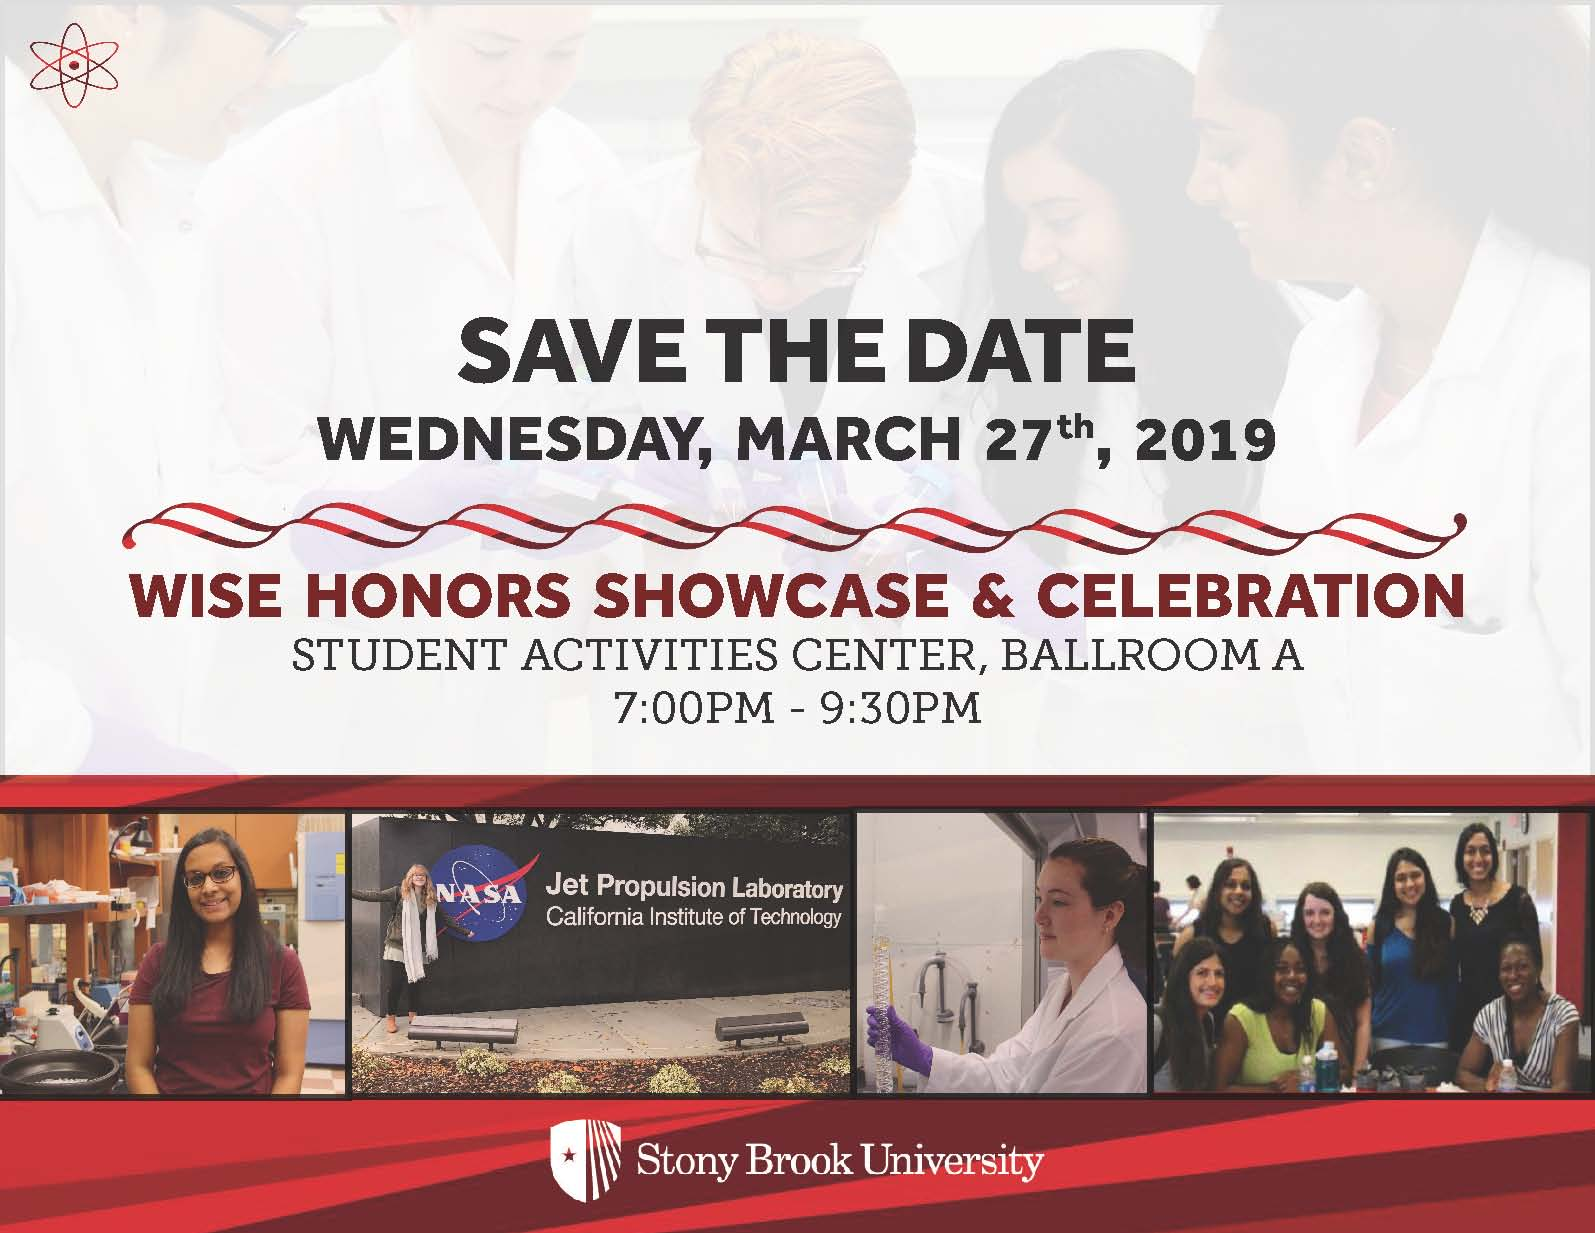 WISE Honors Showcase and Celebration